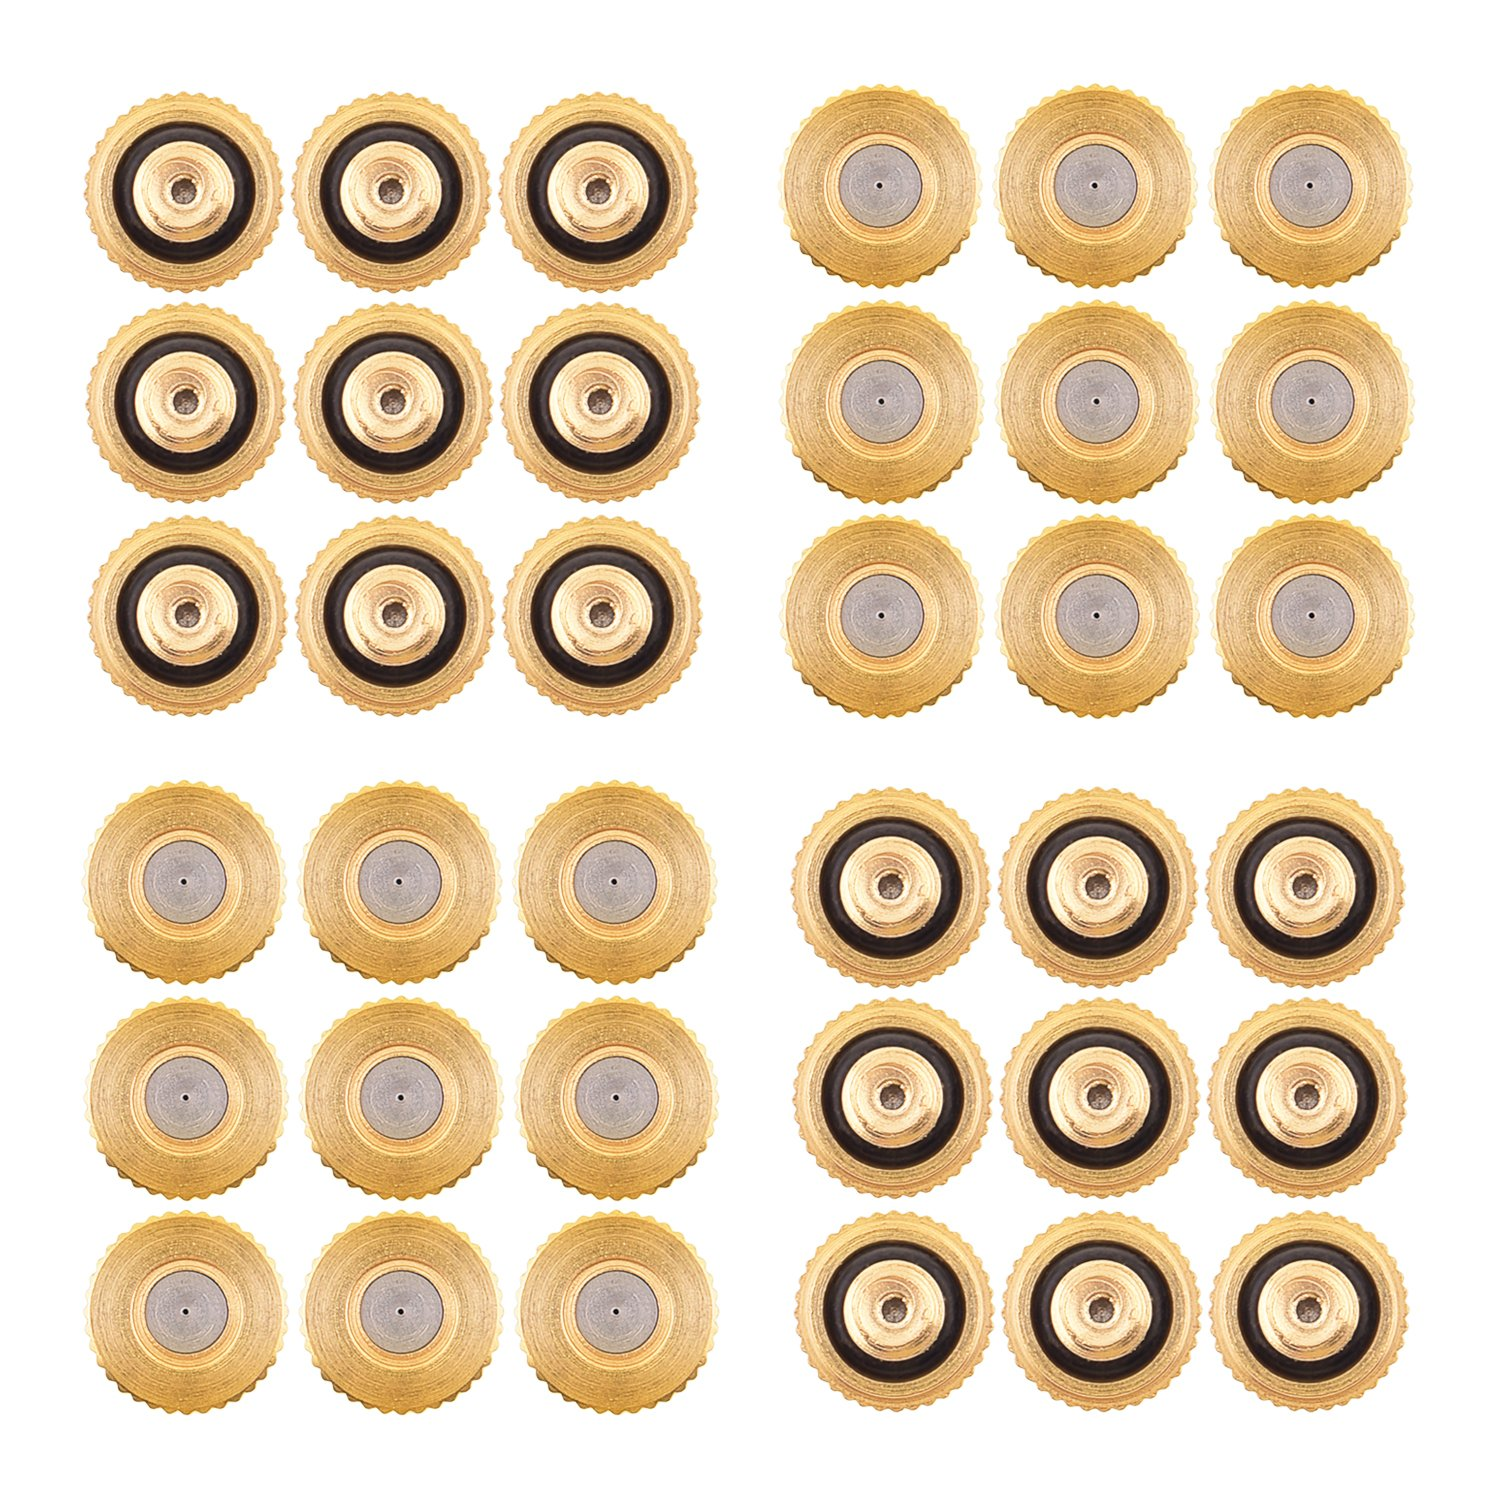 Sunmns 36 Pack Brass Misting Nozzles Outdoor Cooling System Greenhouse Landscaping Dust Control, 0.012 inch Orifice (0.3 mm) 10/24 UN